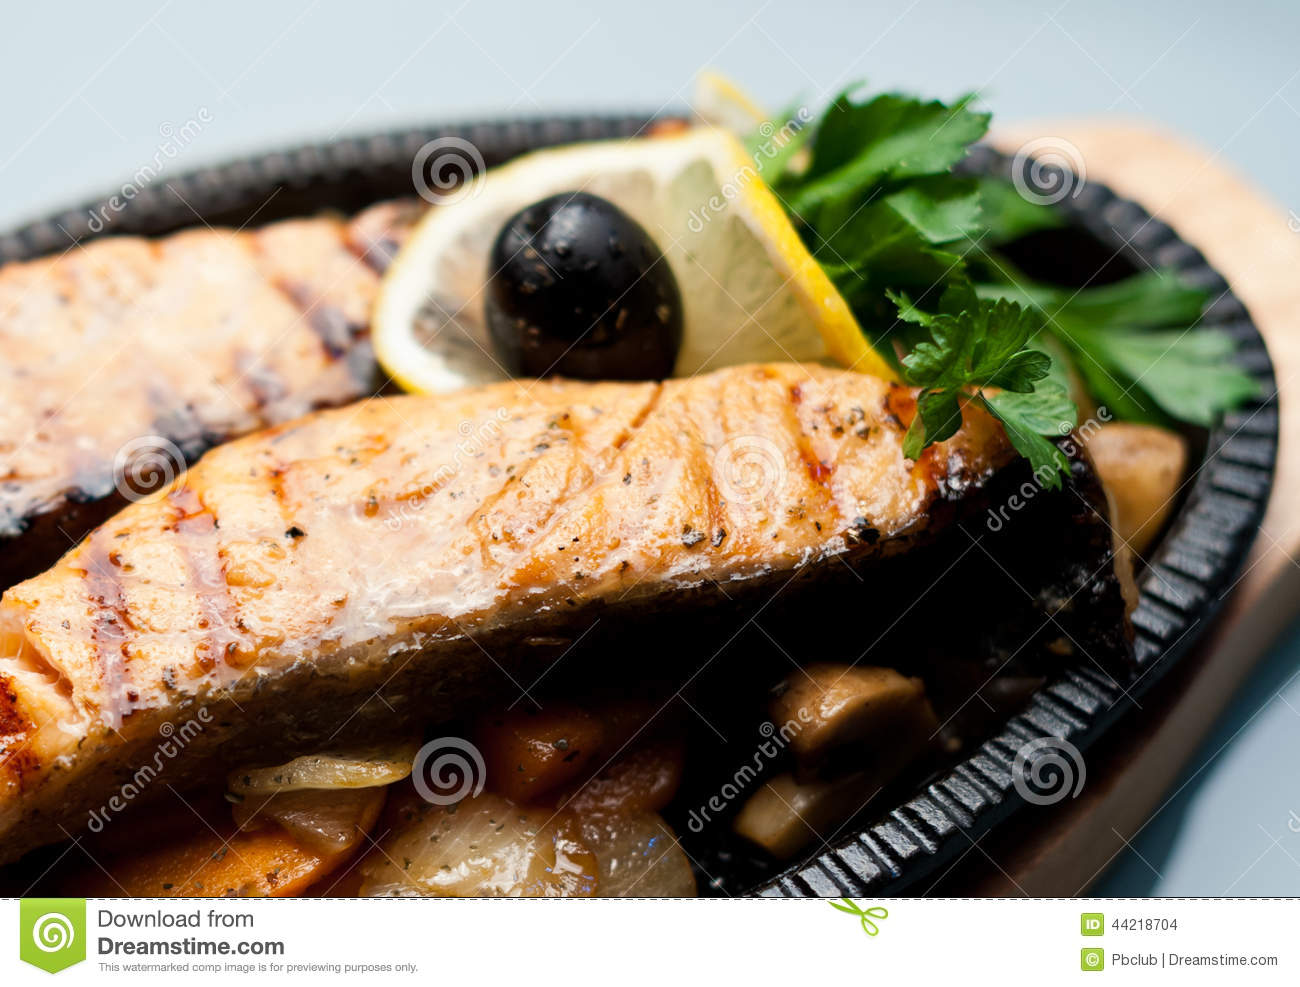 Grilled fish steaks on a bed of vegetables garnished with parsley.